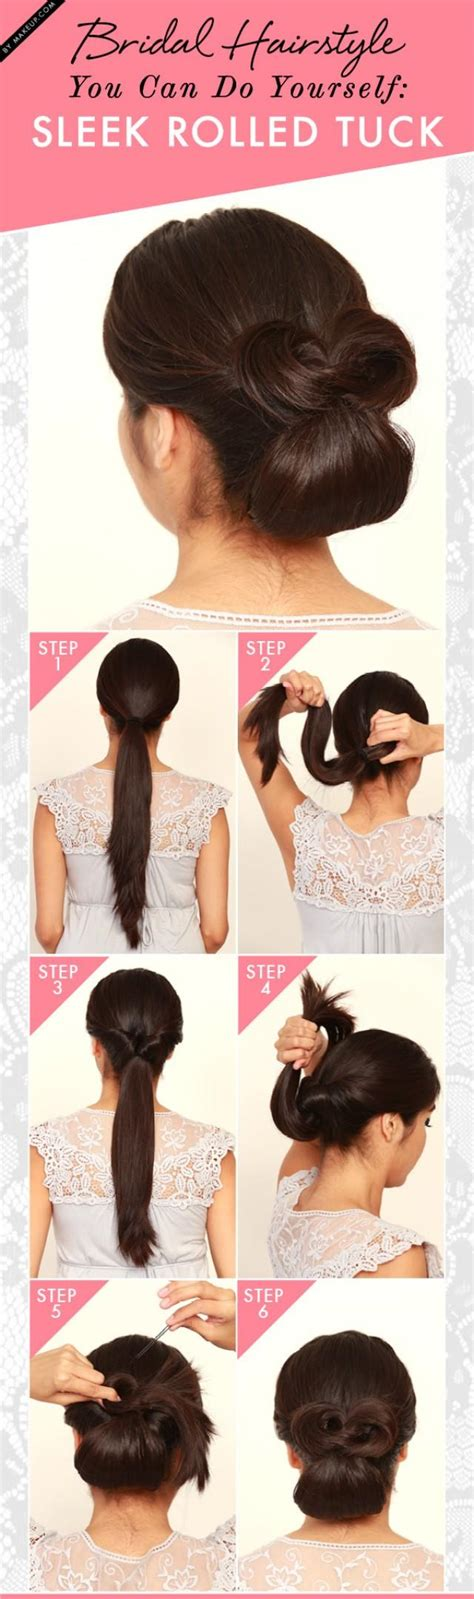 bridal hairstyle      sleek rolled tuck weddbook